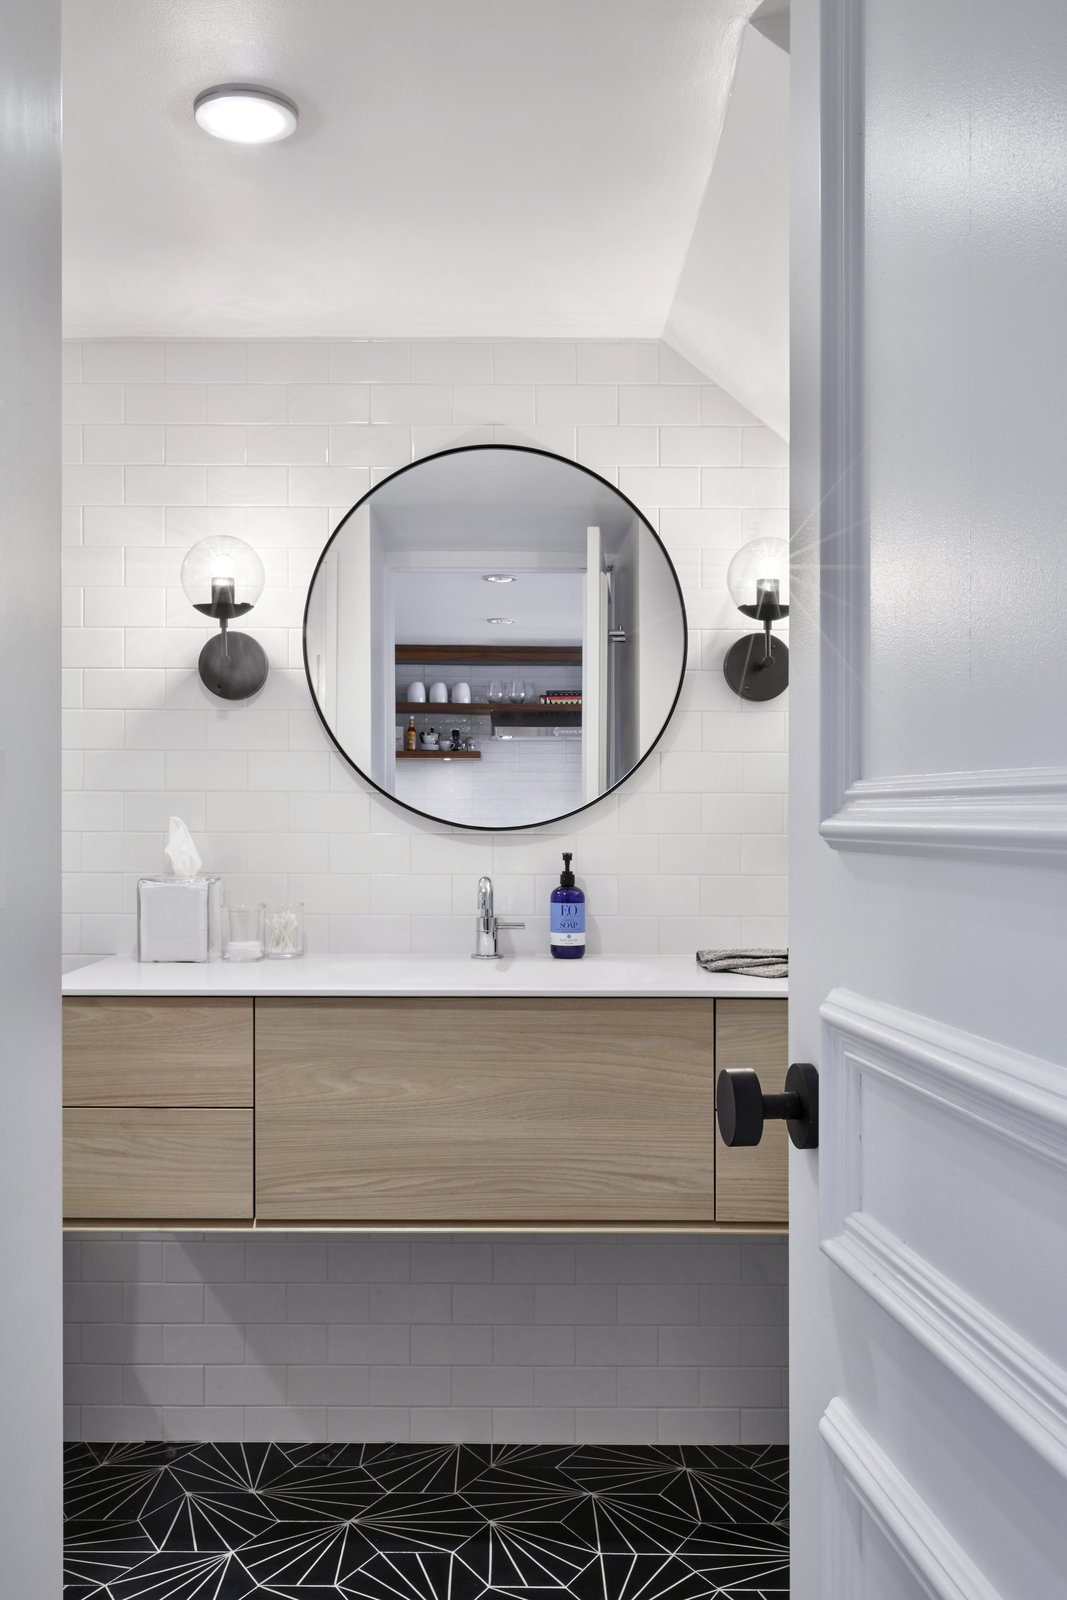 Bath Room Vanity and Sink by Archisesto Tile by Nemo  4th Ave./Union Square Apartment